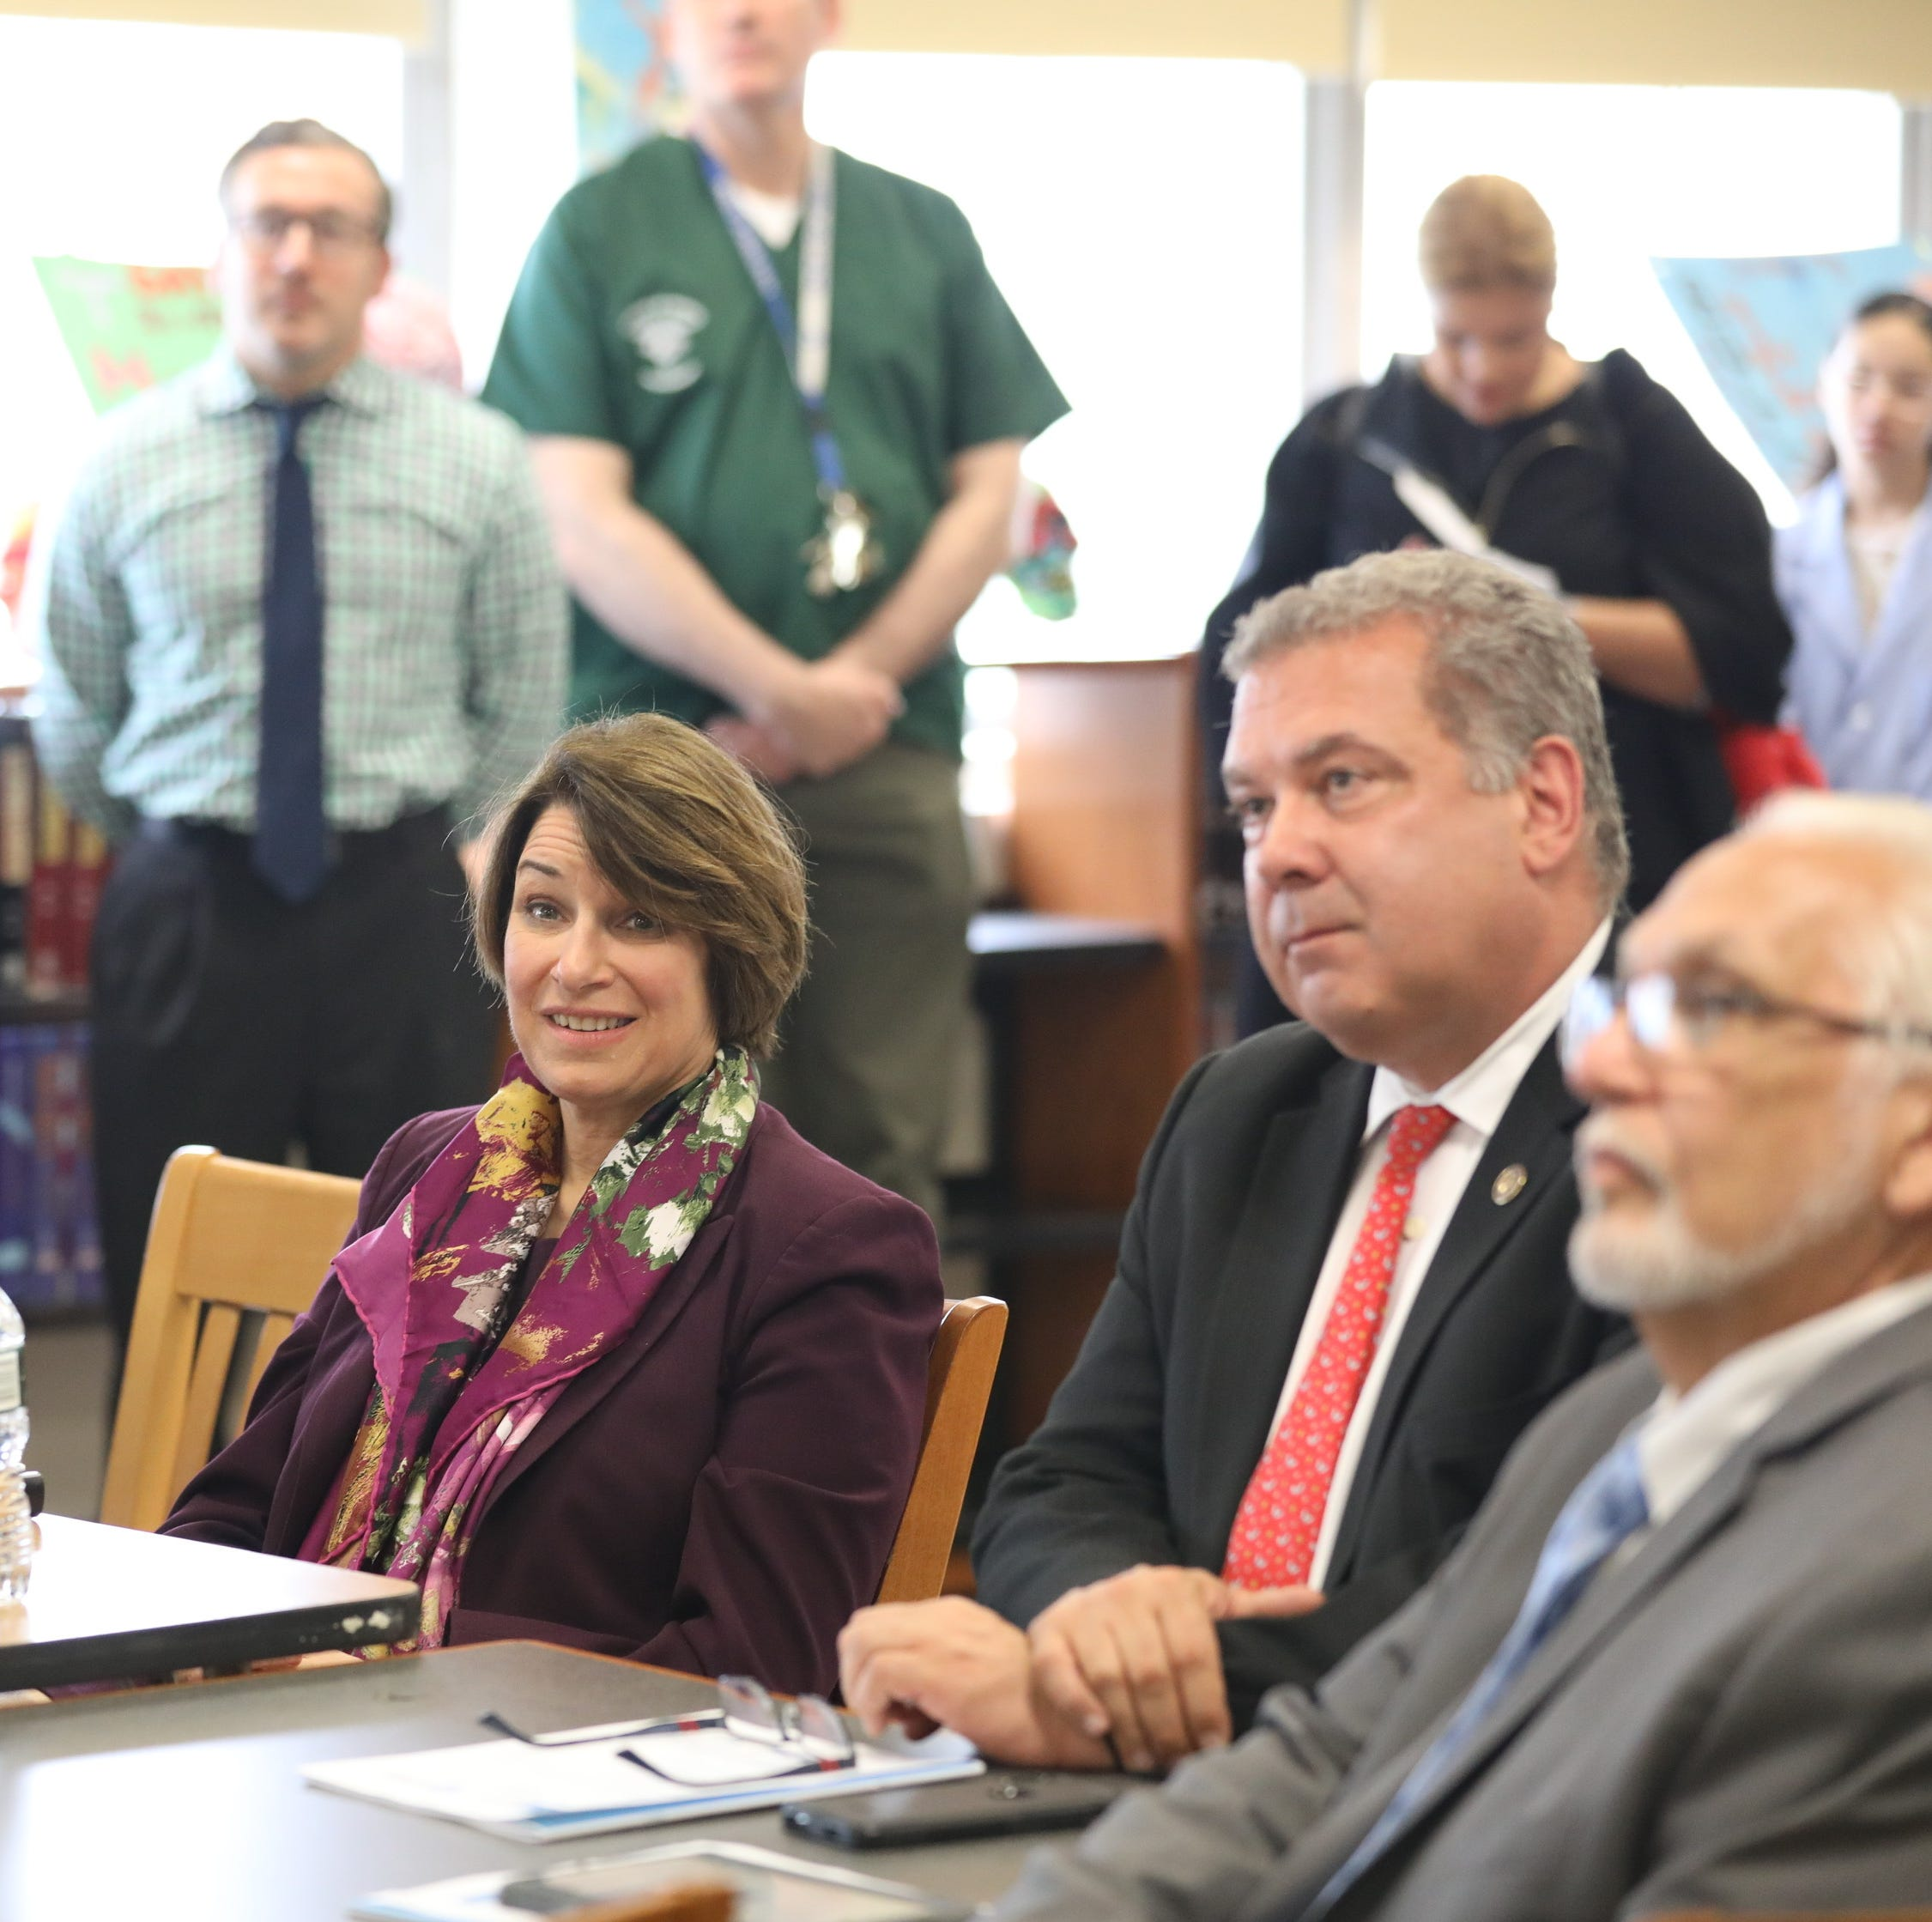 U.S. Sen. Amy Klobuchar, center, and Randi Weingarten, president of the American Federation of teachers left, attend a meeting at Gordon high school in Yonkers.